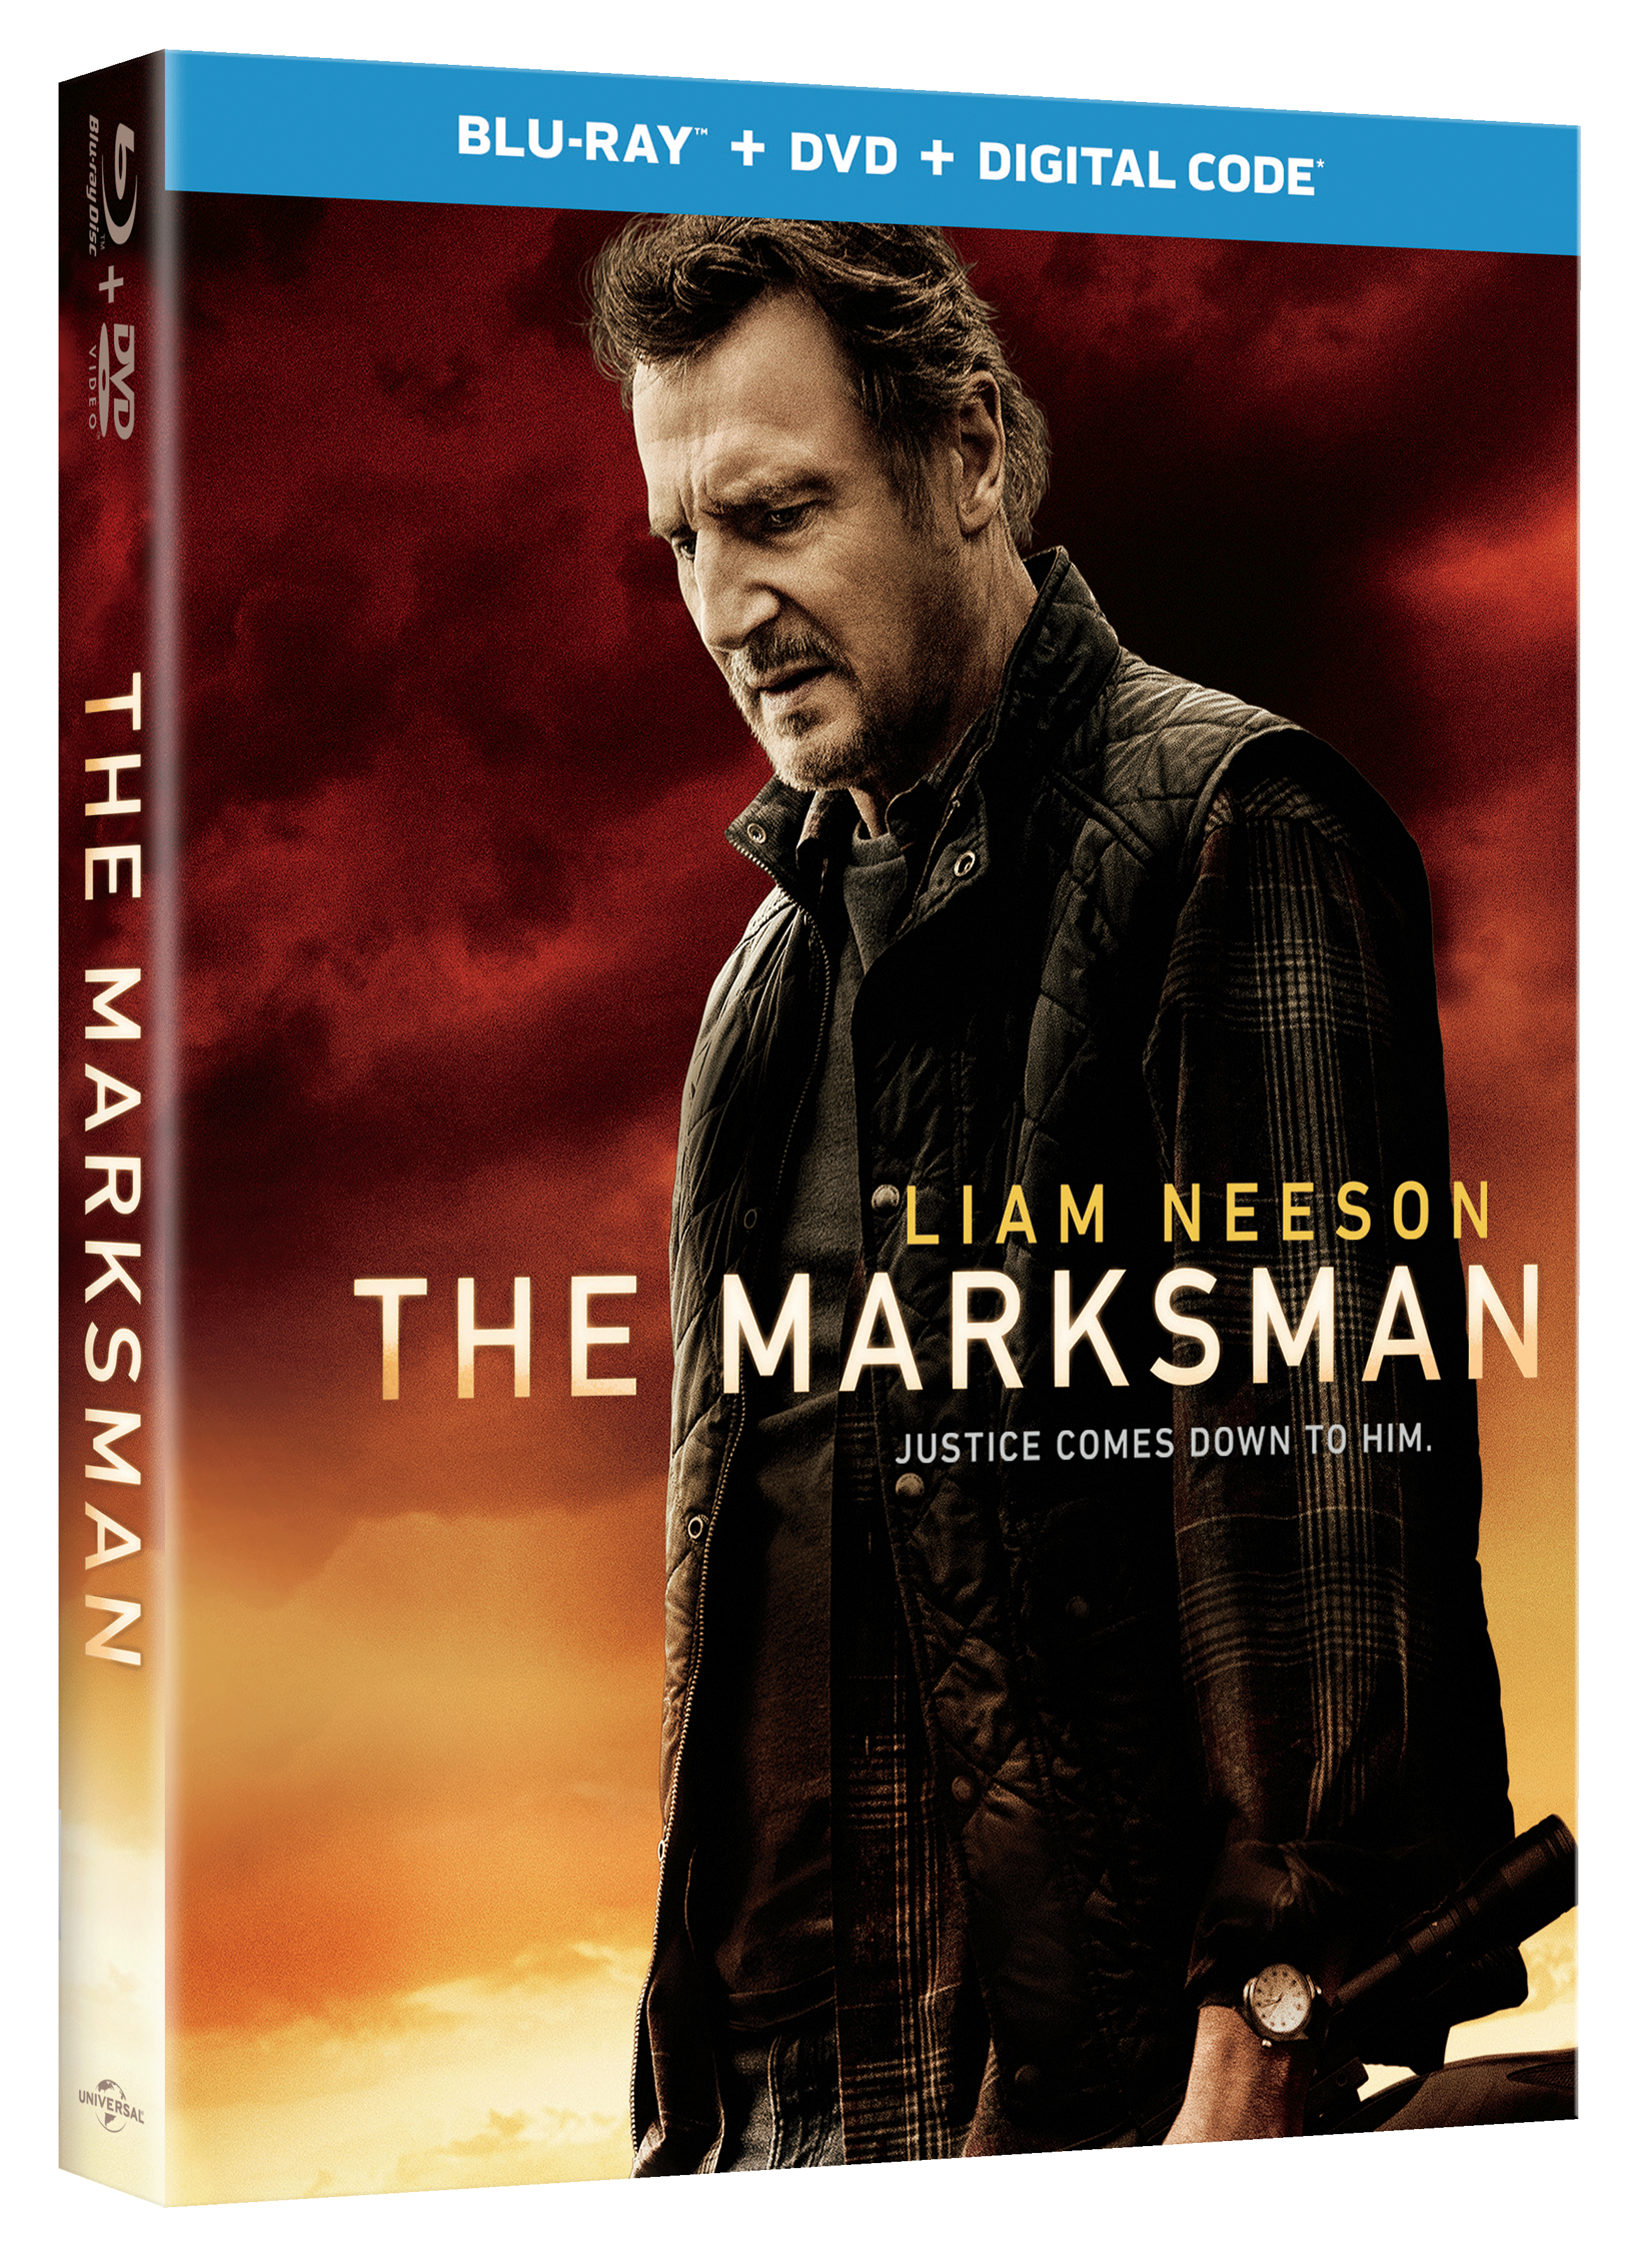 The Marksman poster image